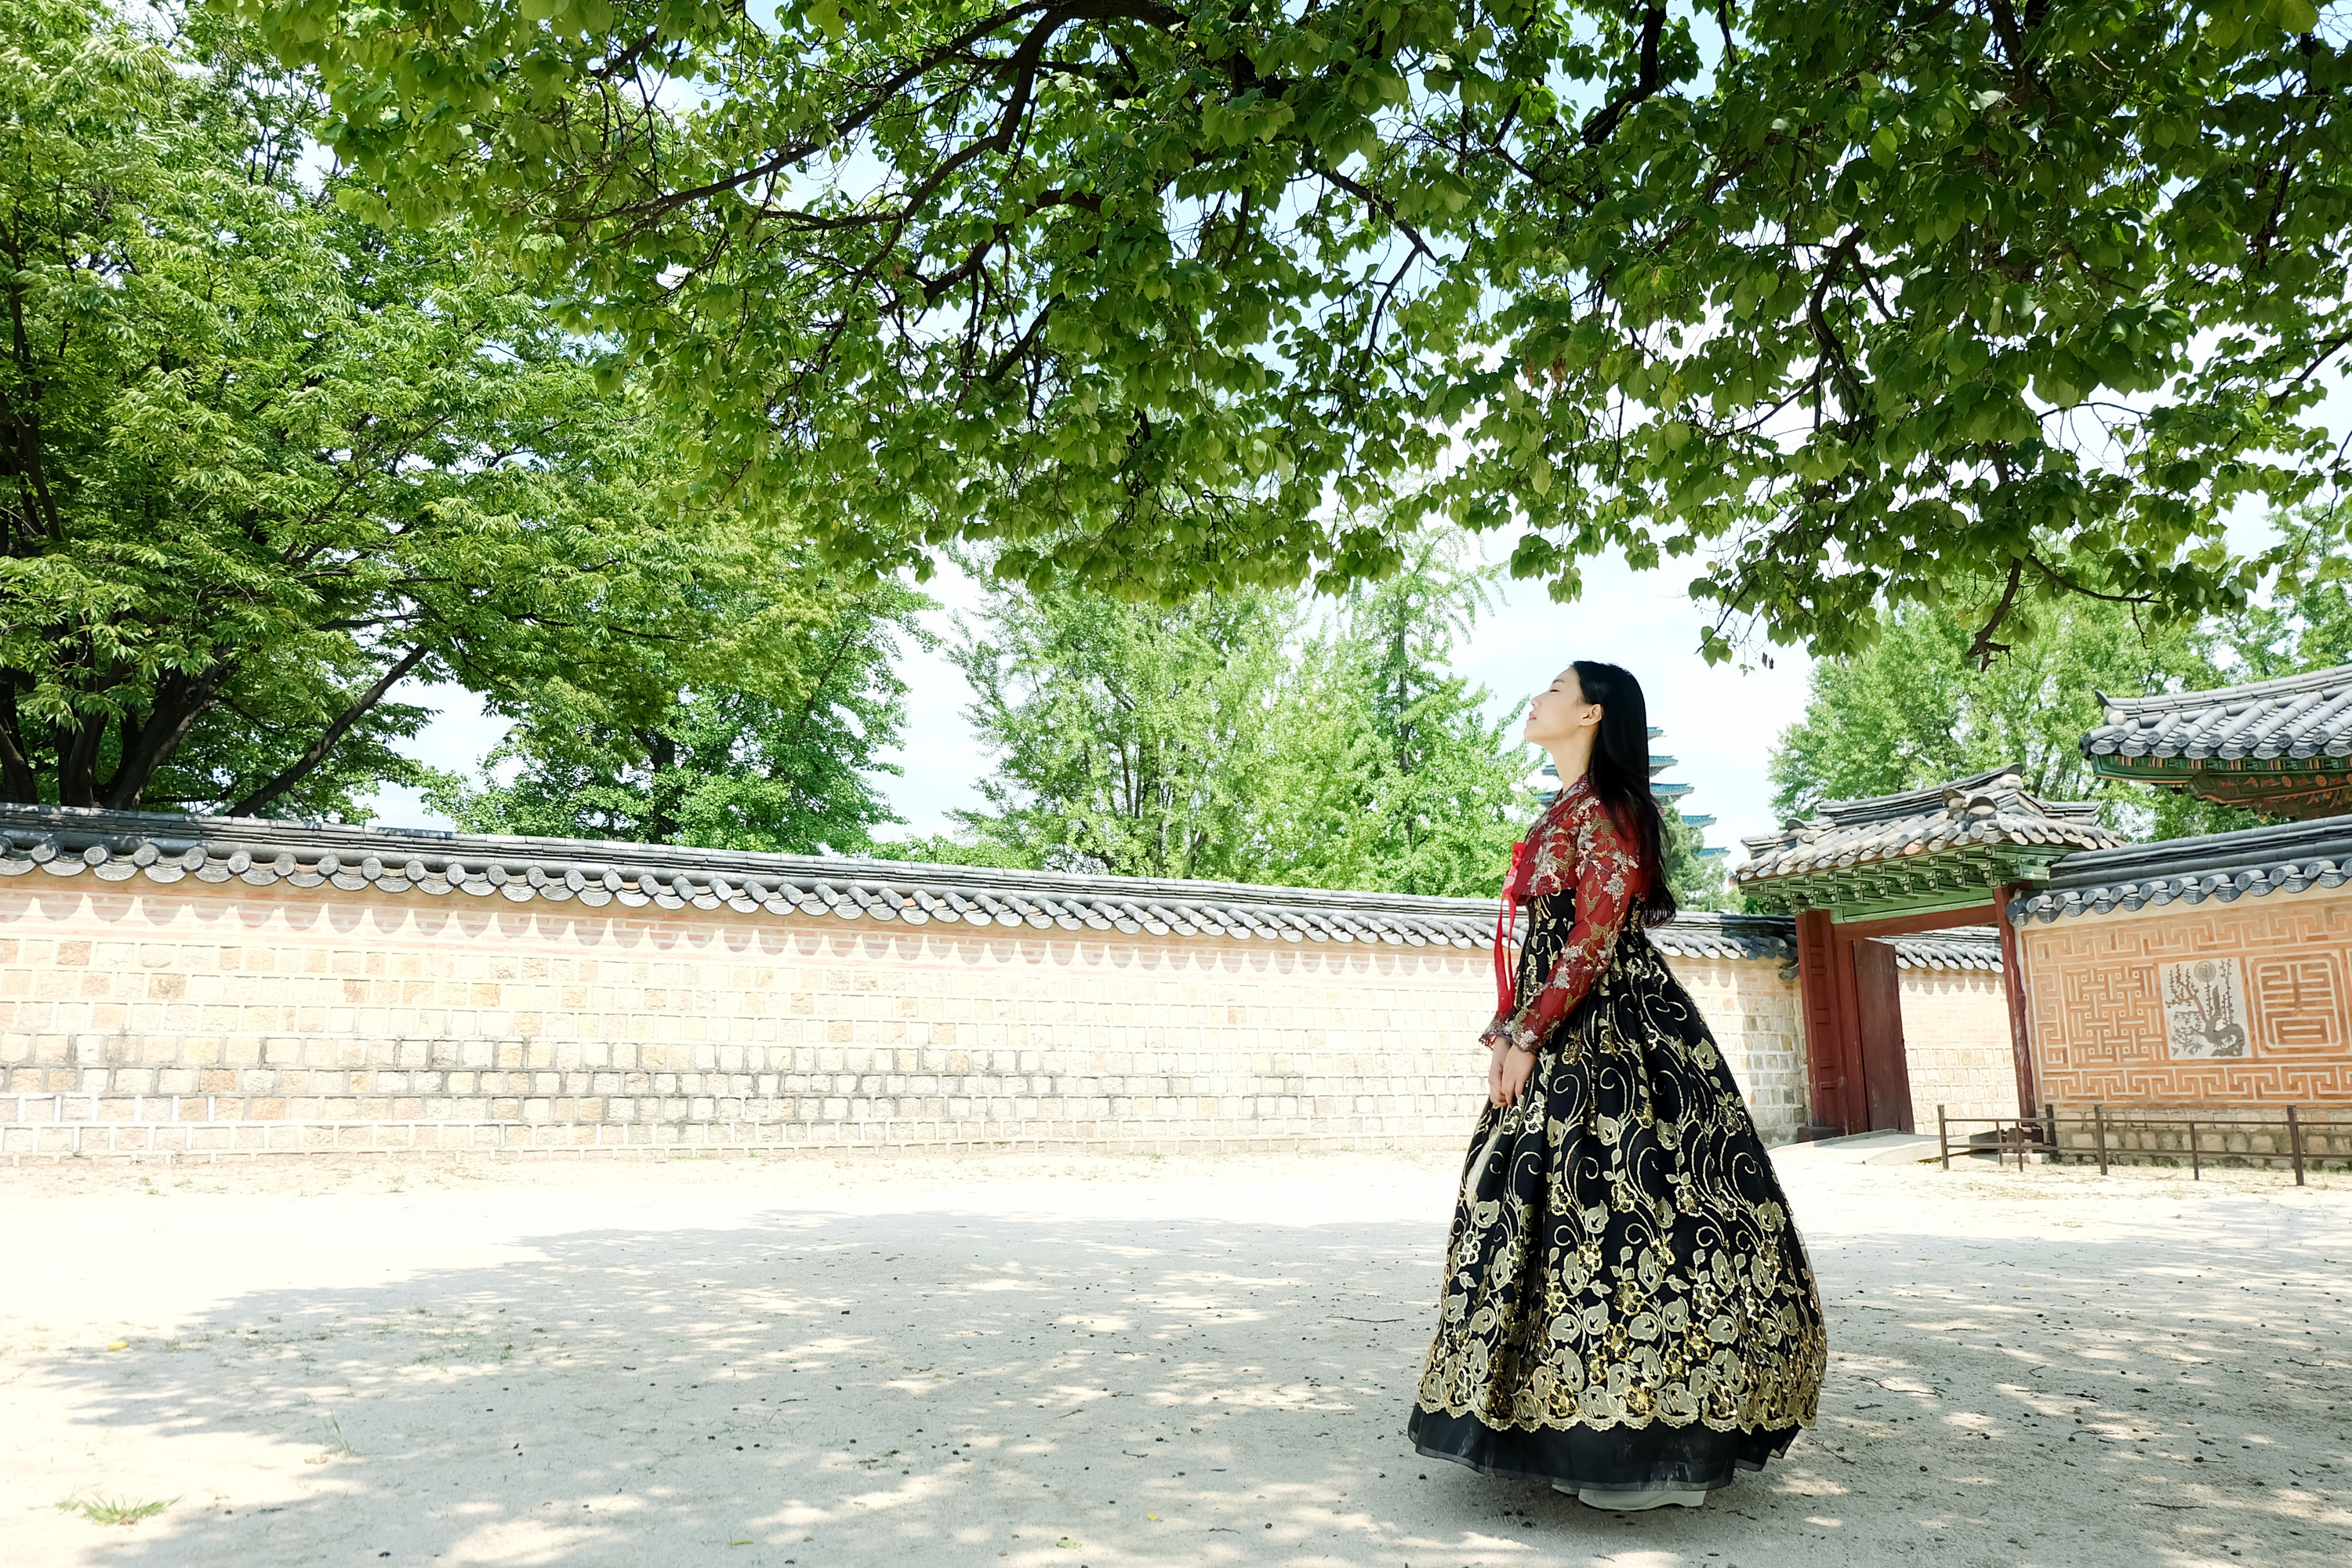 Rent hanbok on the cheap and get free admissions at Seoul's major palaces